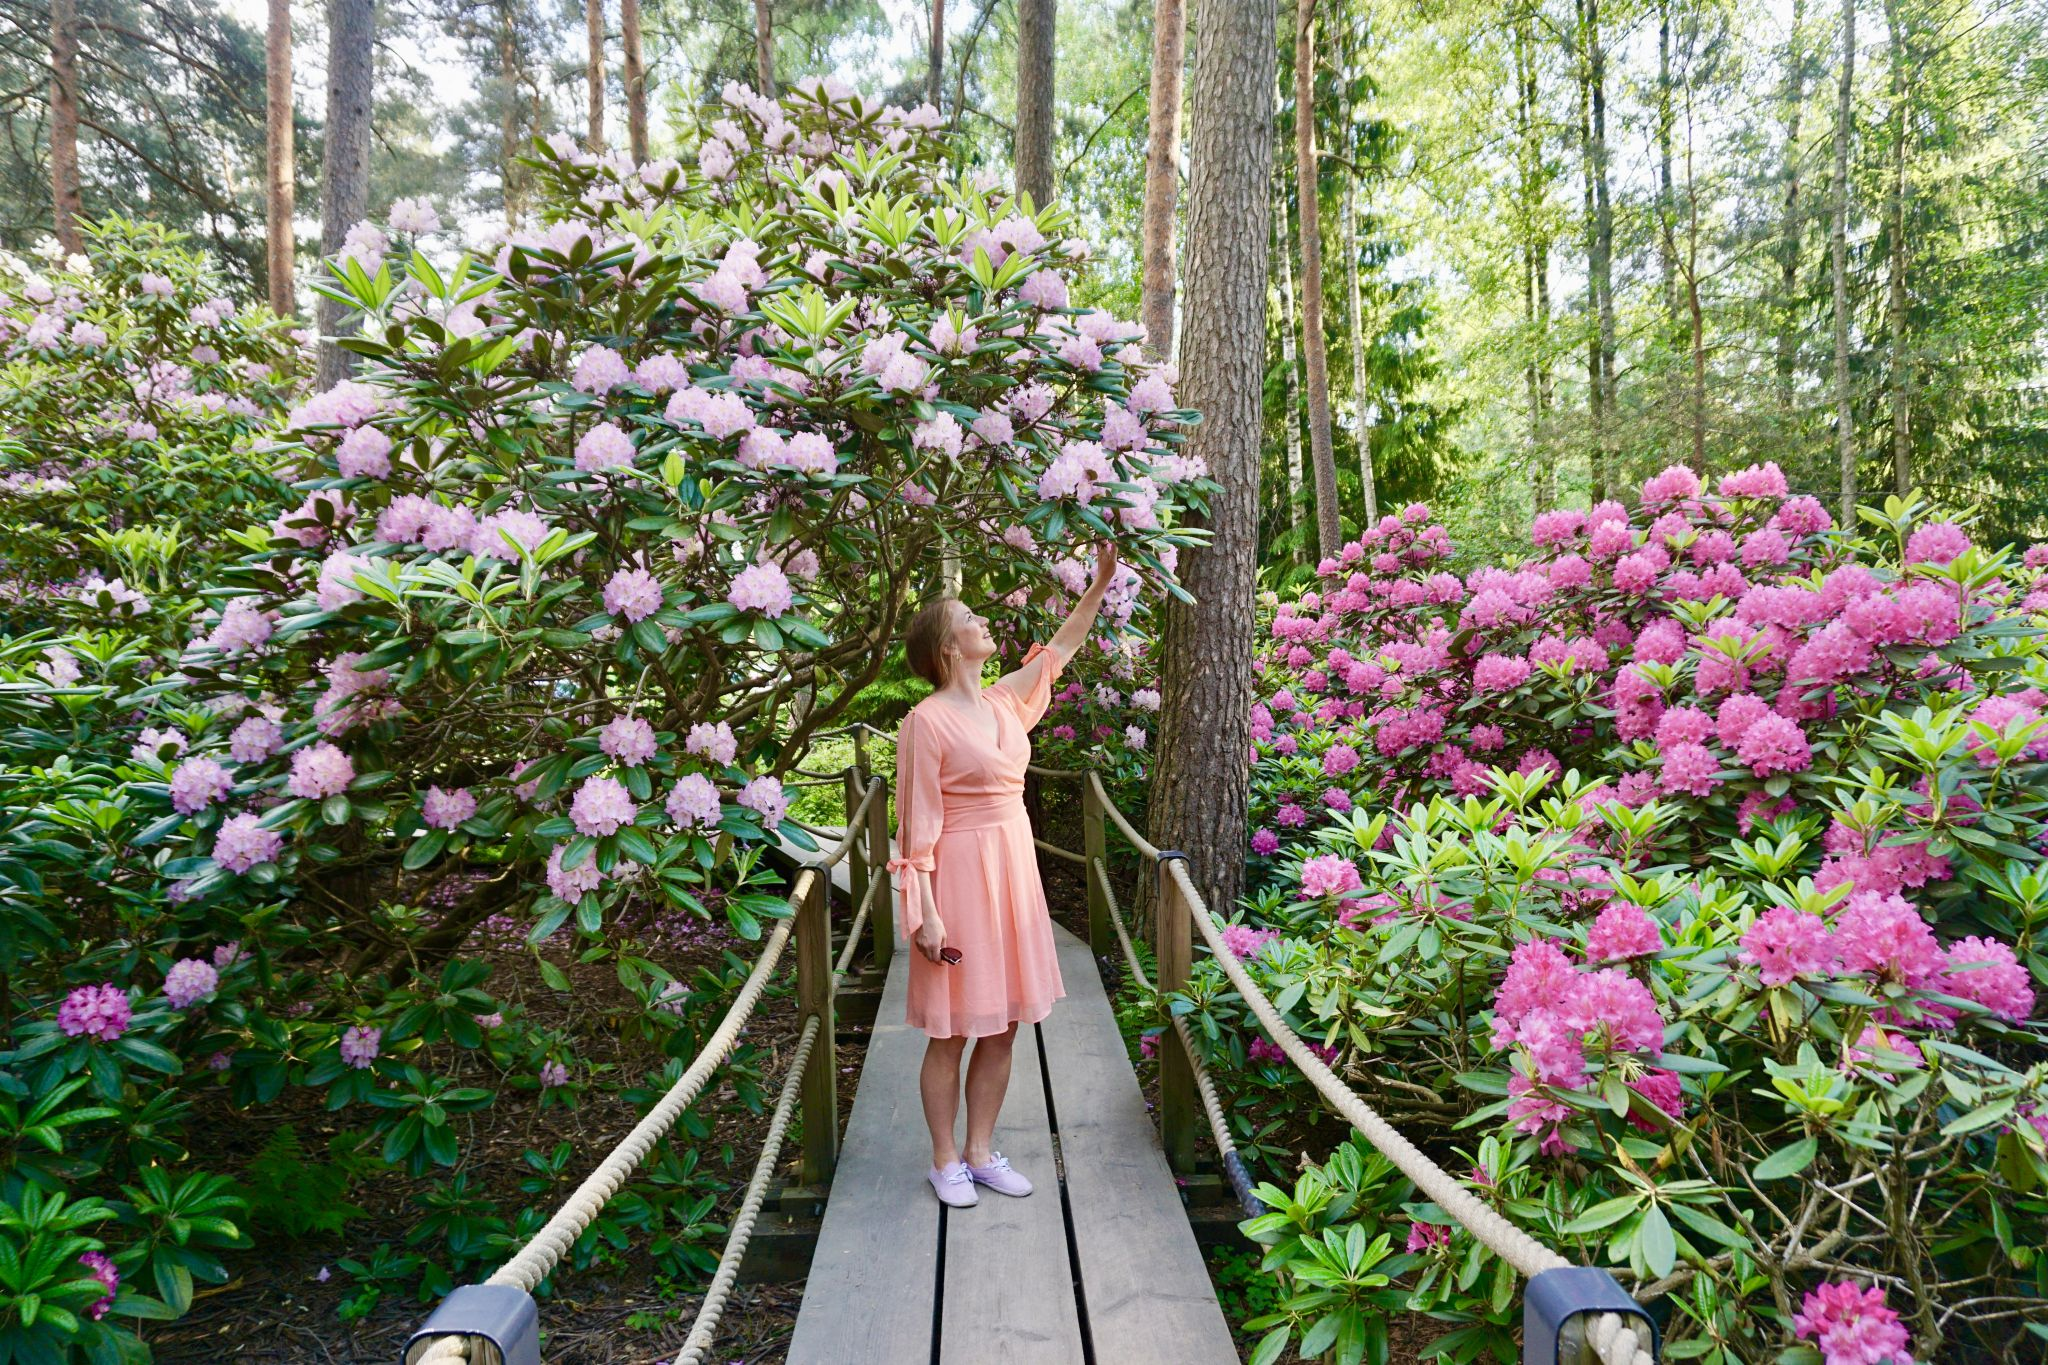 The Rhododendron Park in Helsinki is a must-visit